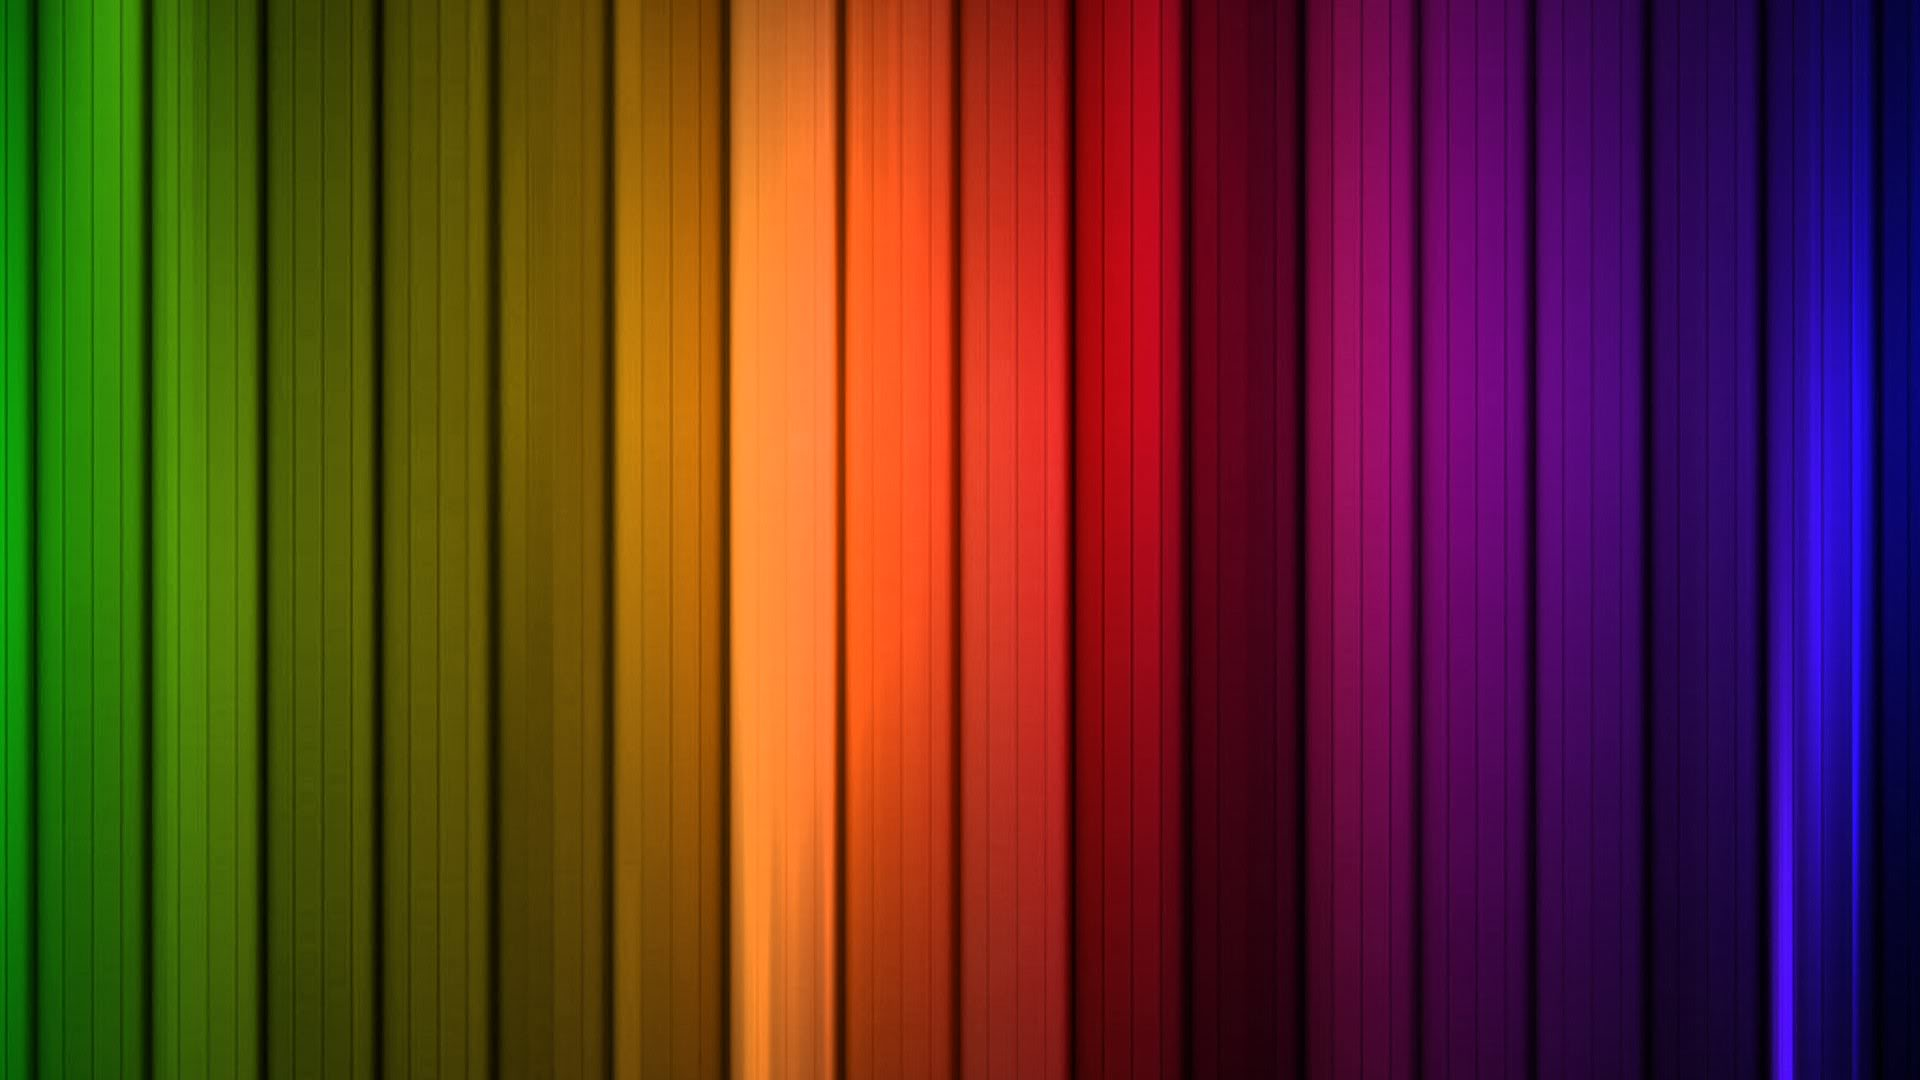 Colorful Rainbow Wallpaper Background 181.73 Kb